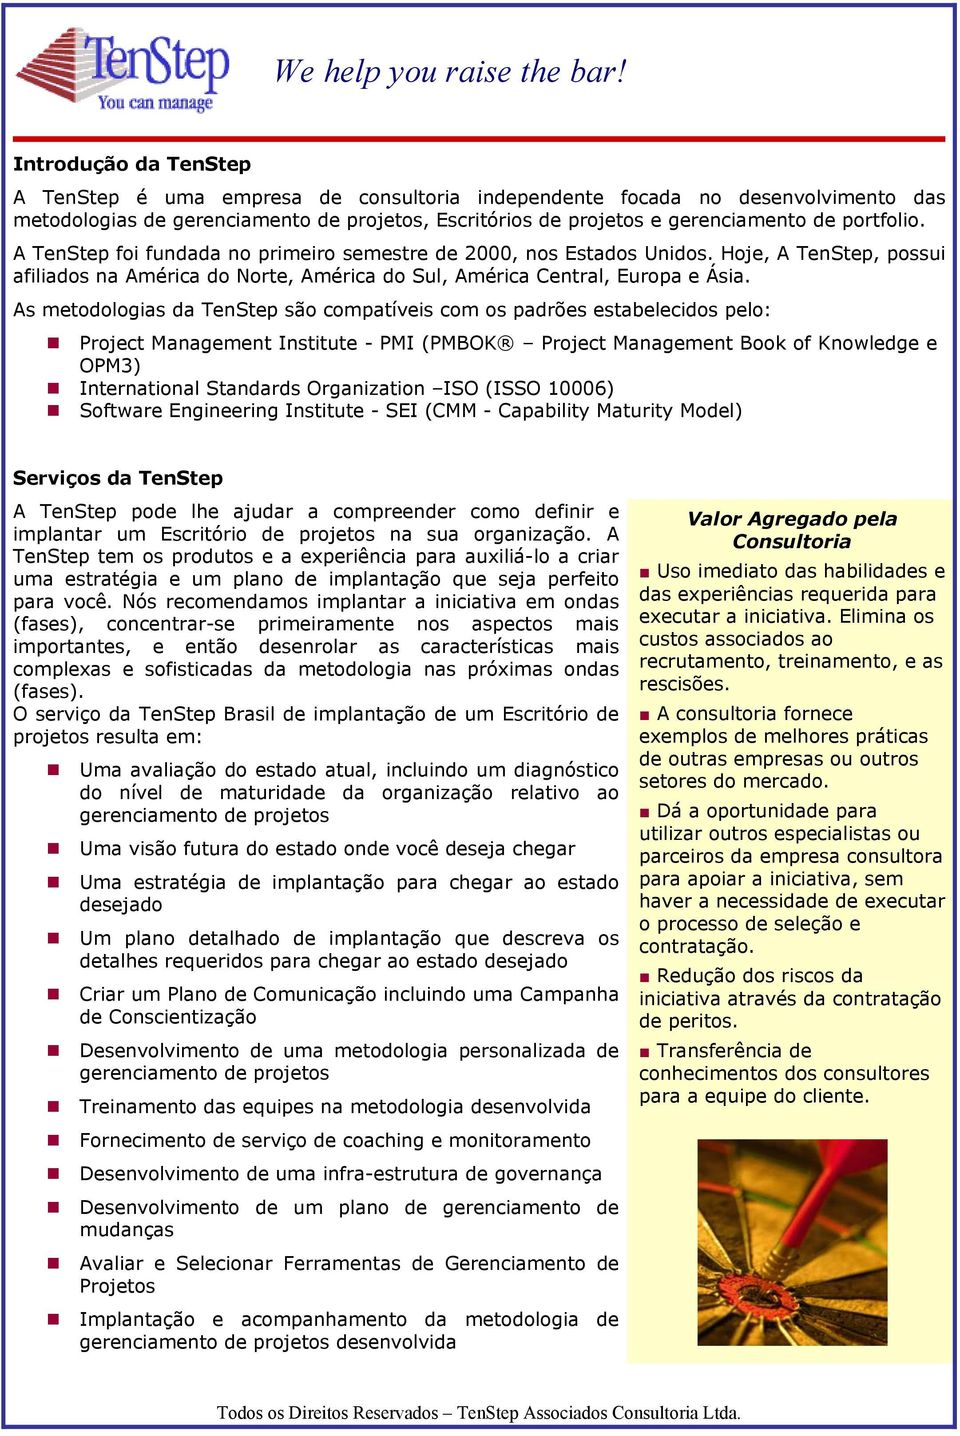 As metodologias da TenStep são compatíveis com os padrões estabelecidos pelo: Project Management Institute - PMI (PMBOK Project Management Book of Knowledge e OPM3) International Standards